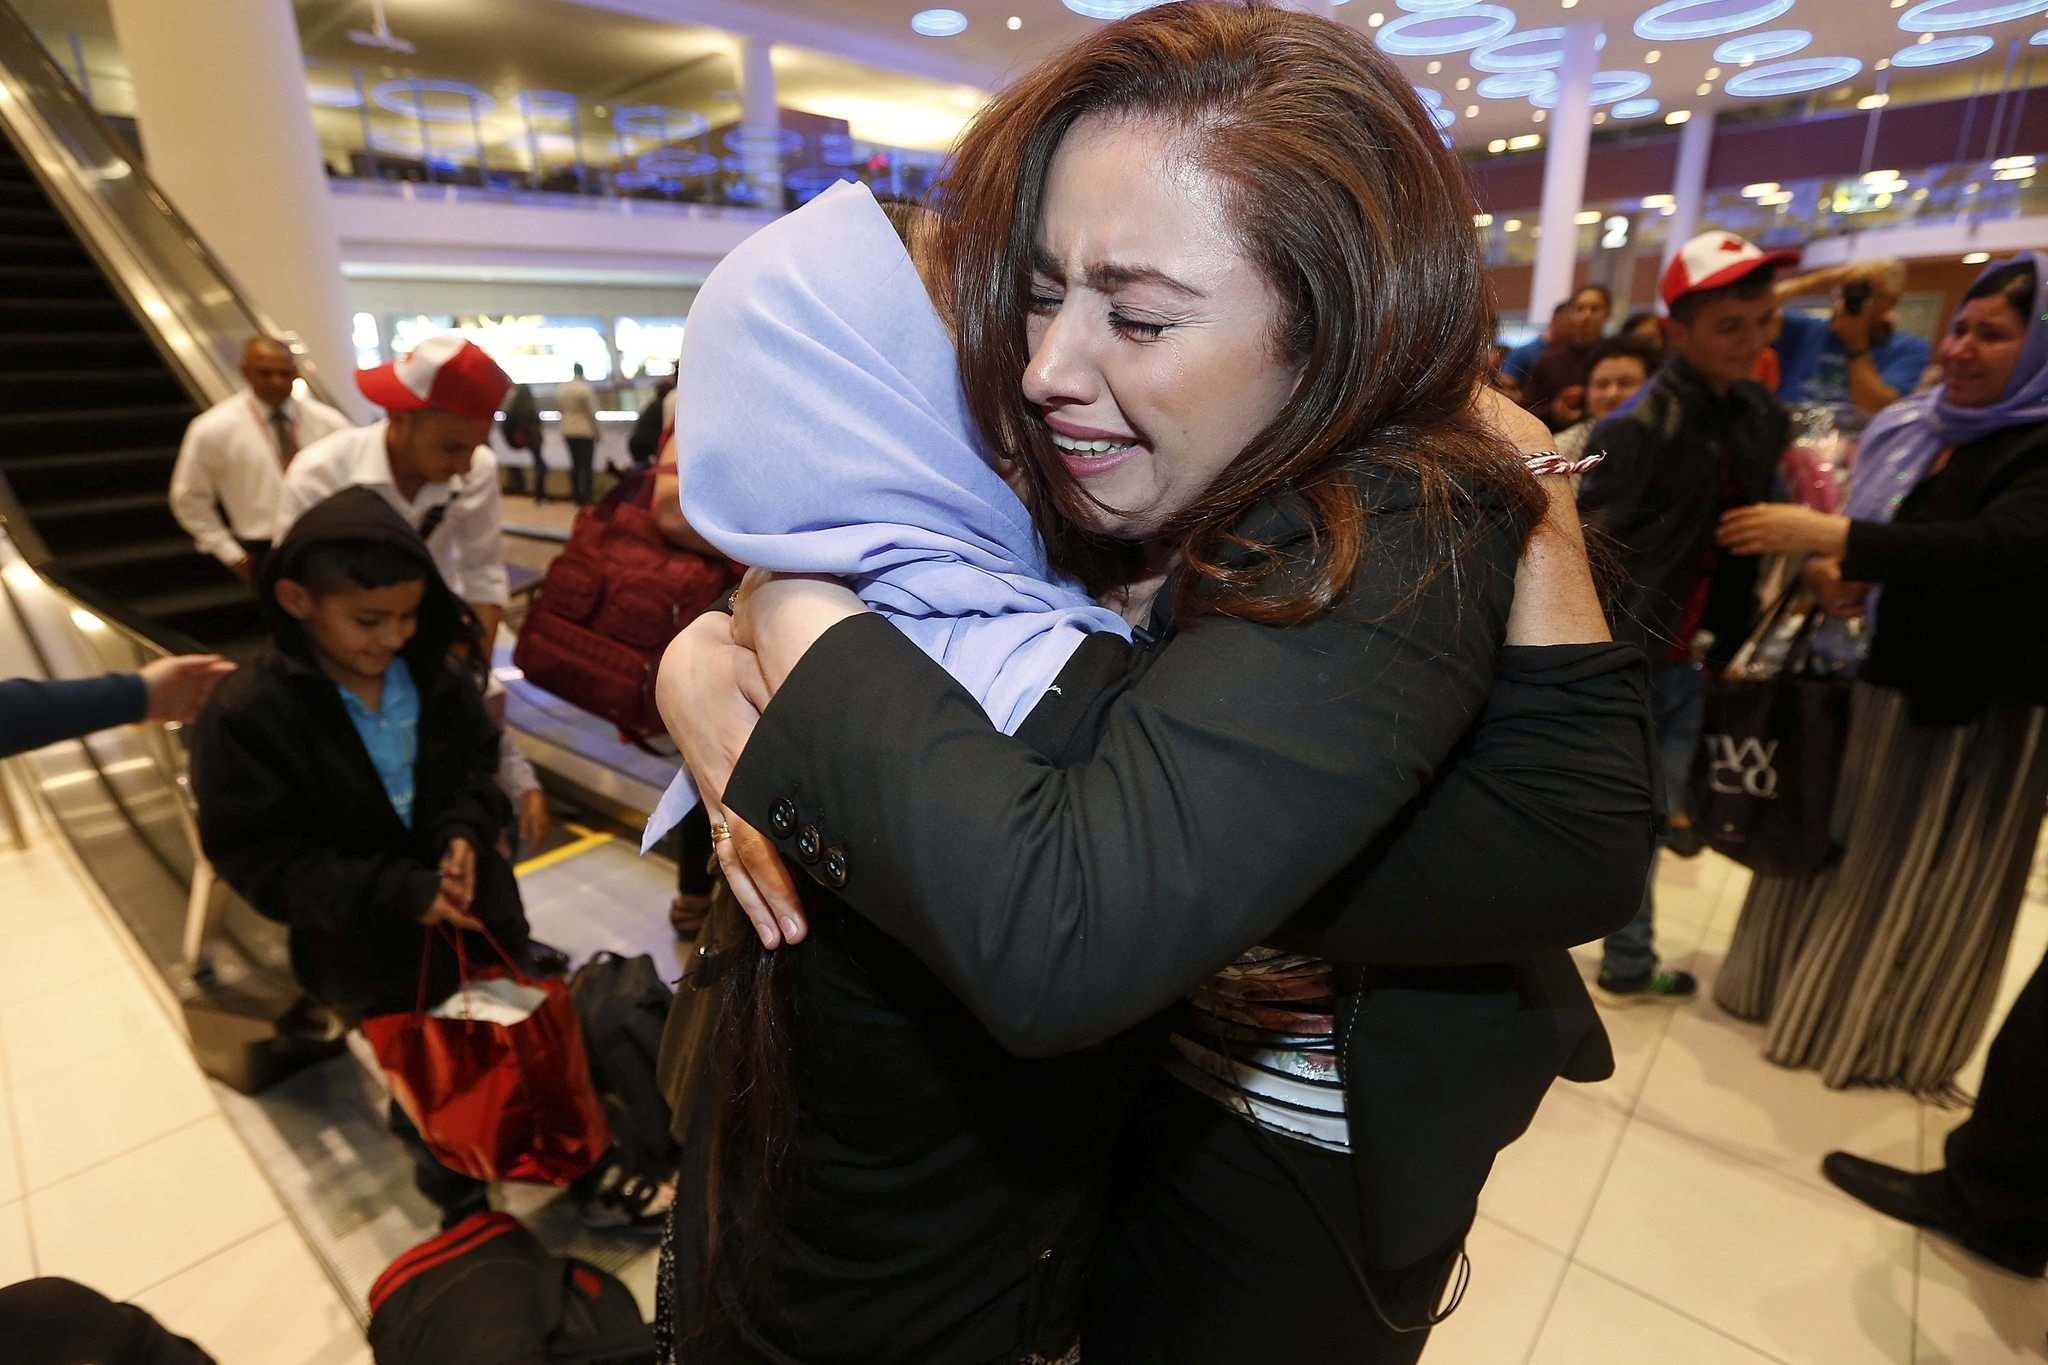 JOHN WOODS / WINNIPEG FREE PRESS files</p><p>Nafiya Naso, seen welcoming family at the airport in 2016, says many refugees speak of Yazidi women being bought and sold as slaves by the Islamic State group, which justifies these atrocities through its interpretation of Islam.</p></p>